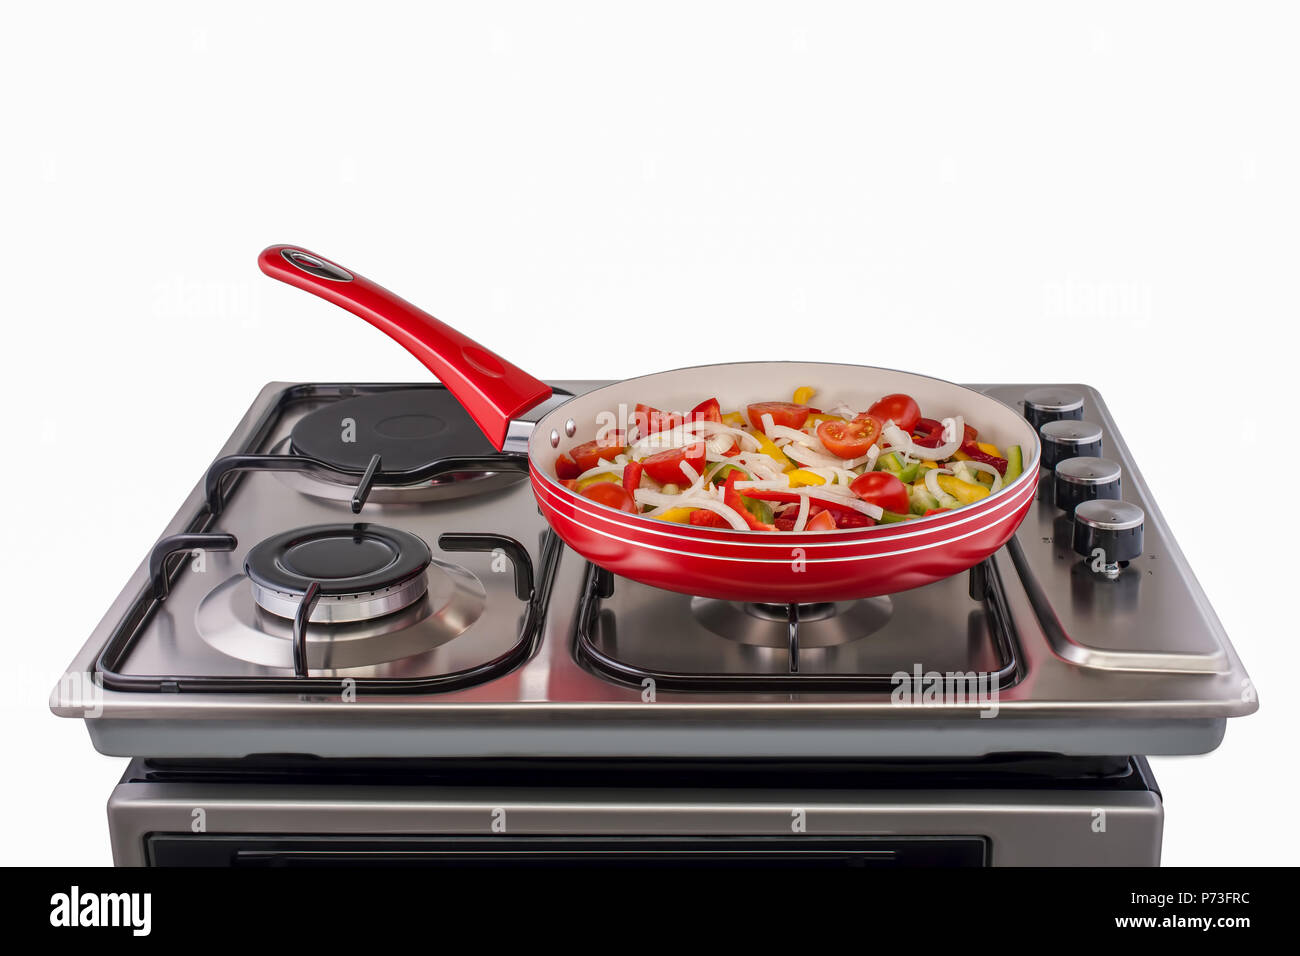 Electric Stove Stock Photos Amp Electric Stove Stock Images